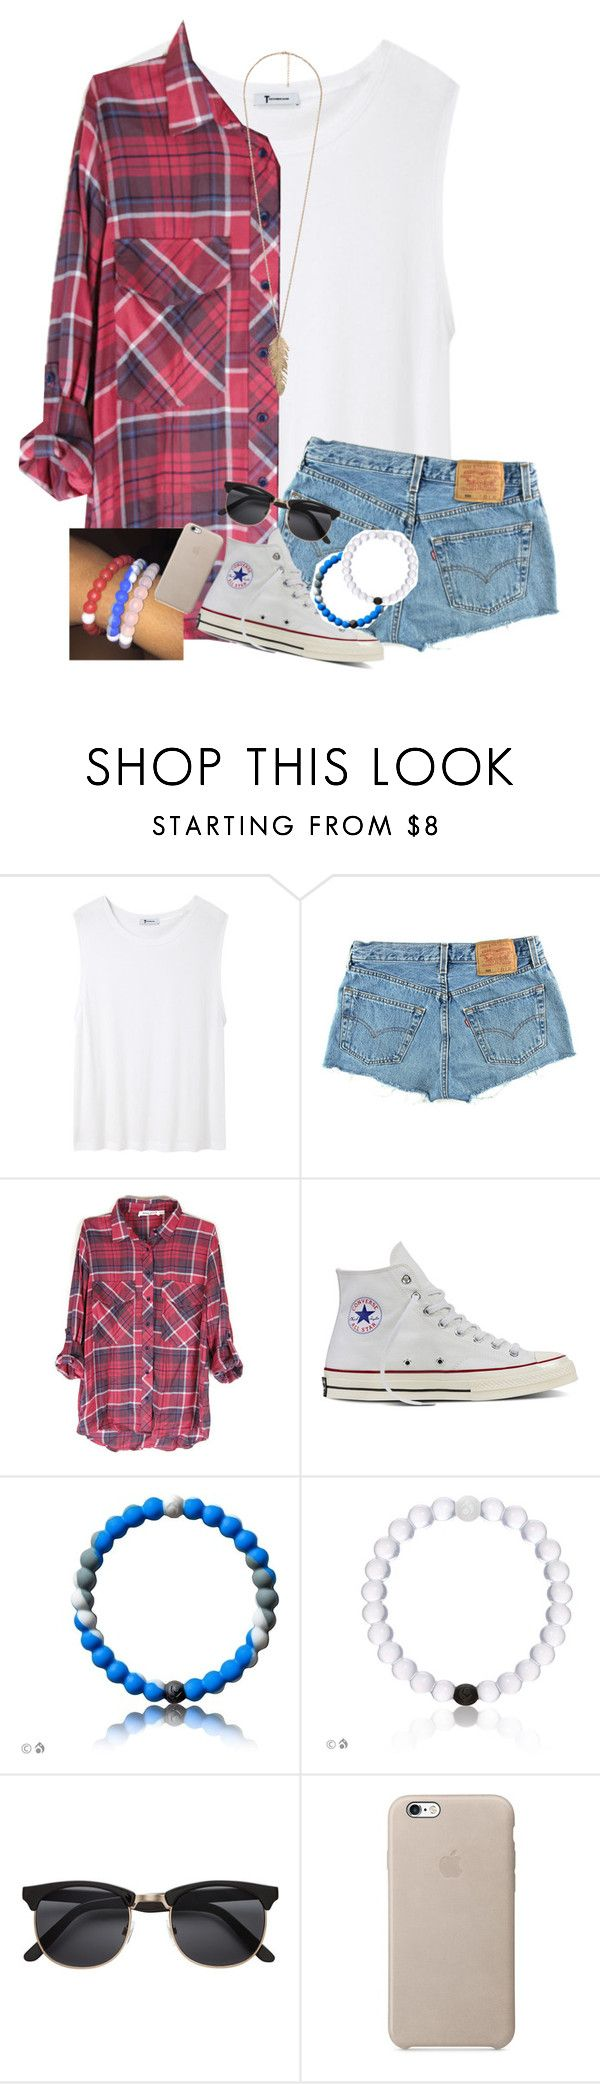 """""""Got a Shark Lokai"""" by daydreammmm ❤ liked on Polyvore featuring T By Alexander Wang, Levi's, Converse, H&M and Forever 21"""